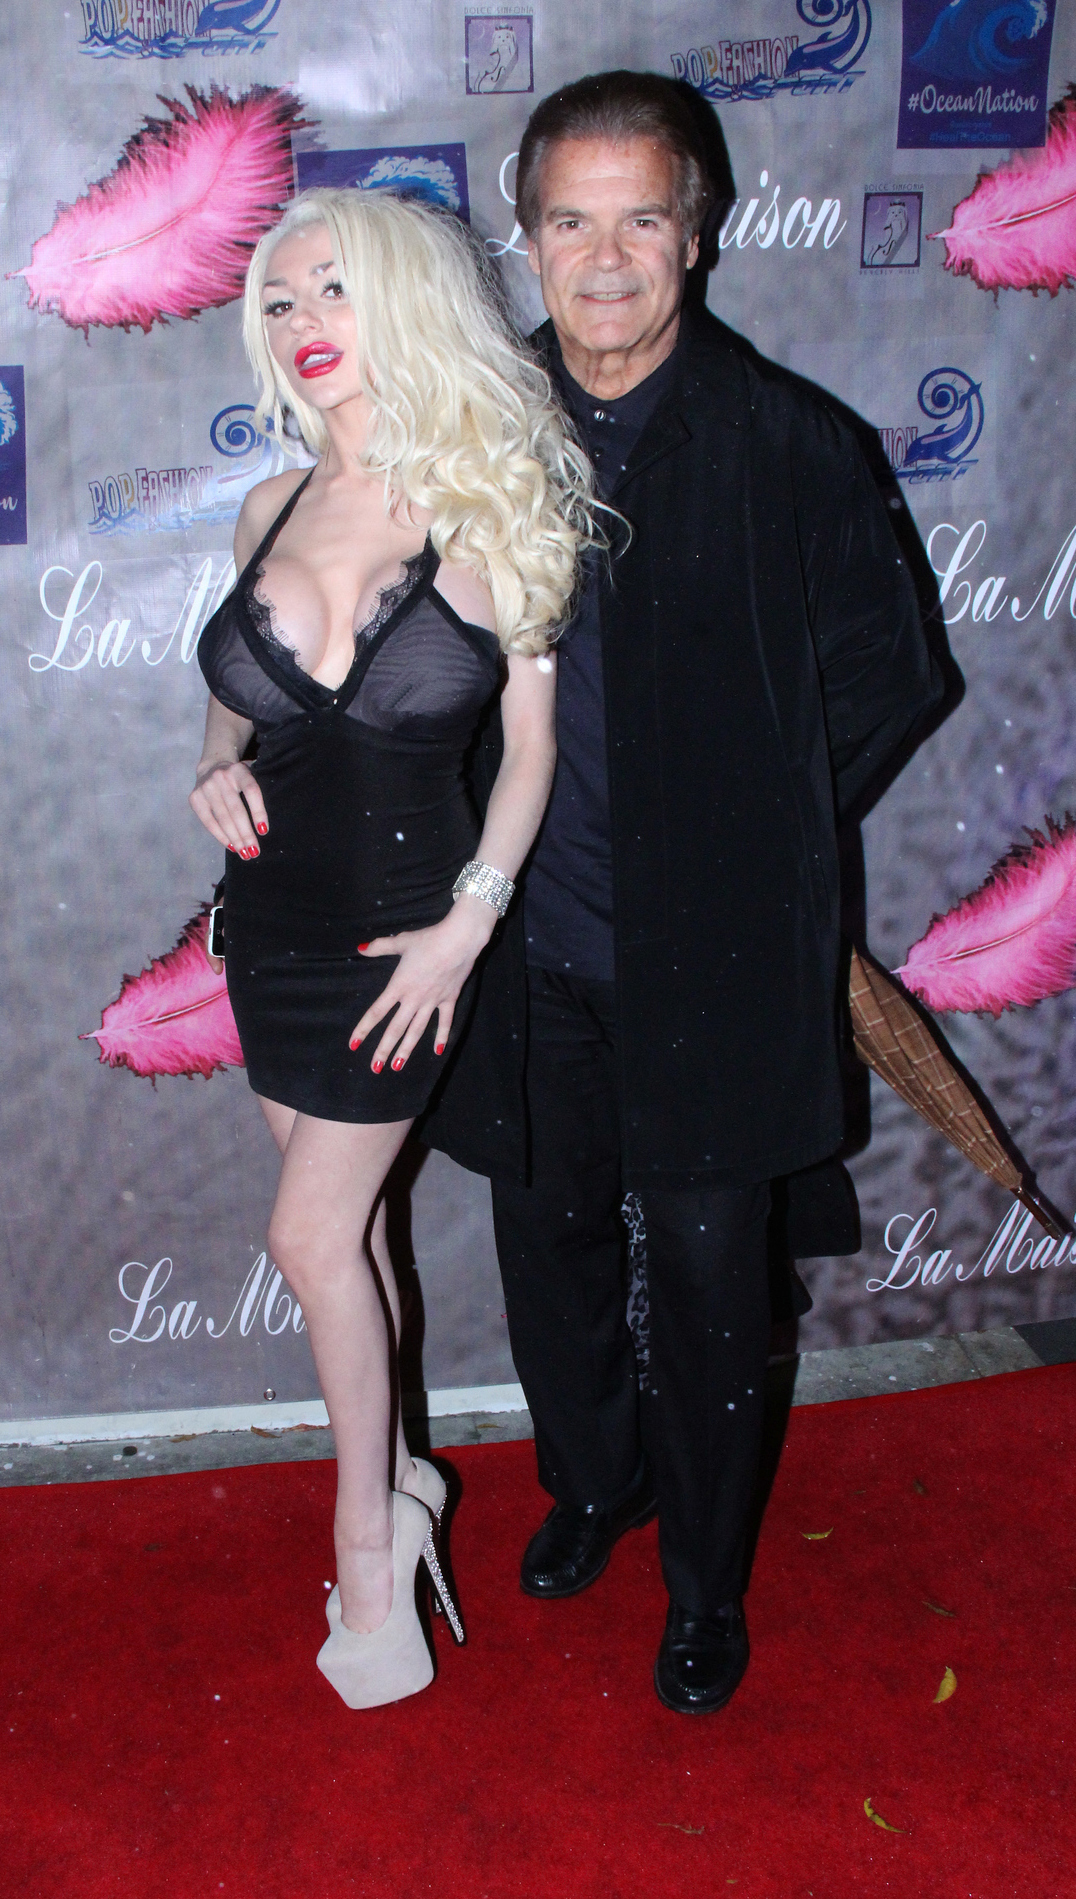 Courtney Stodden goes out with Anna Nicole's ex